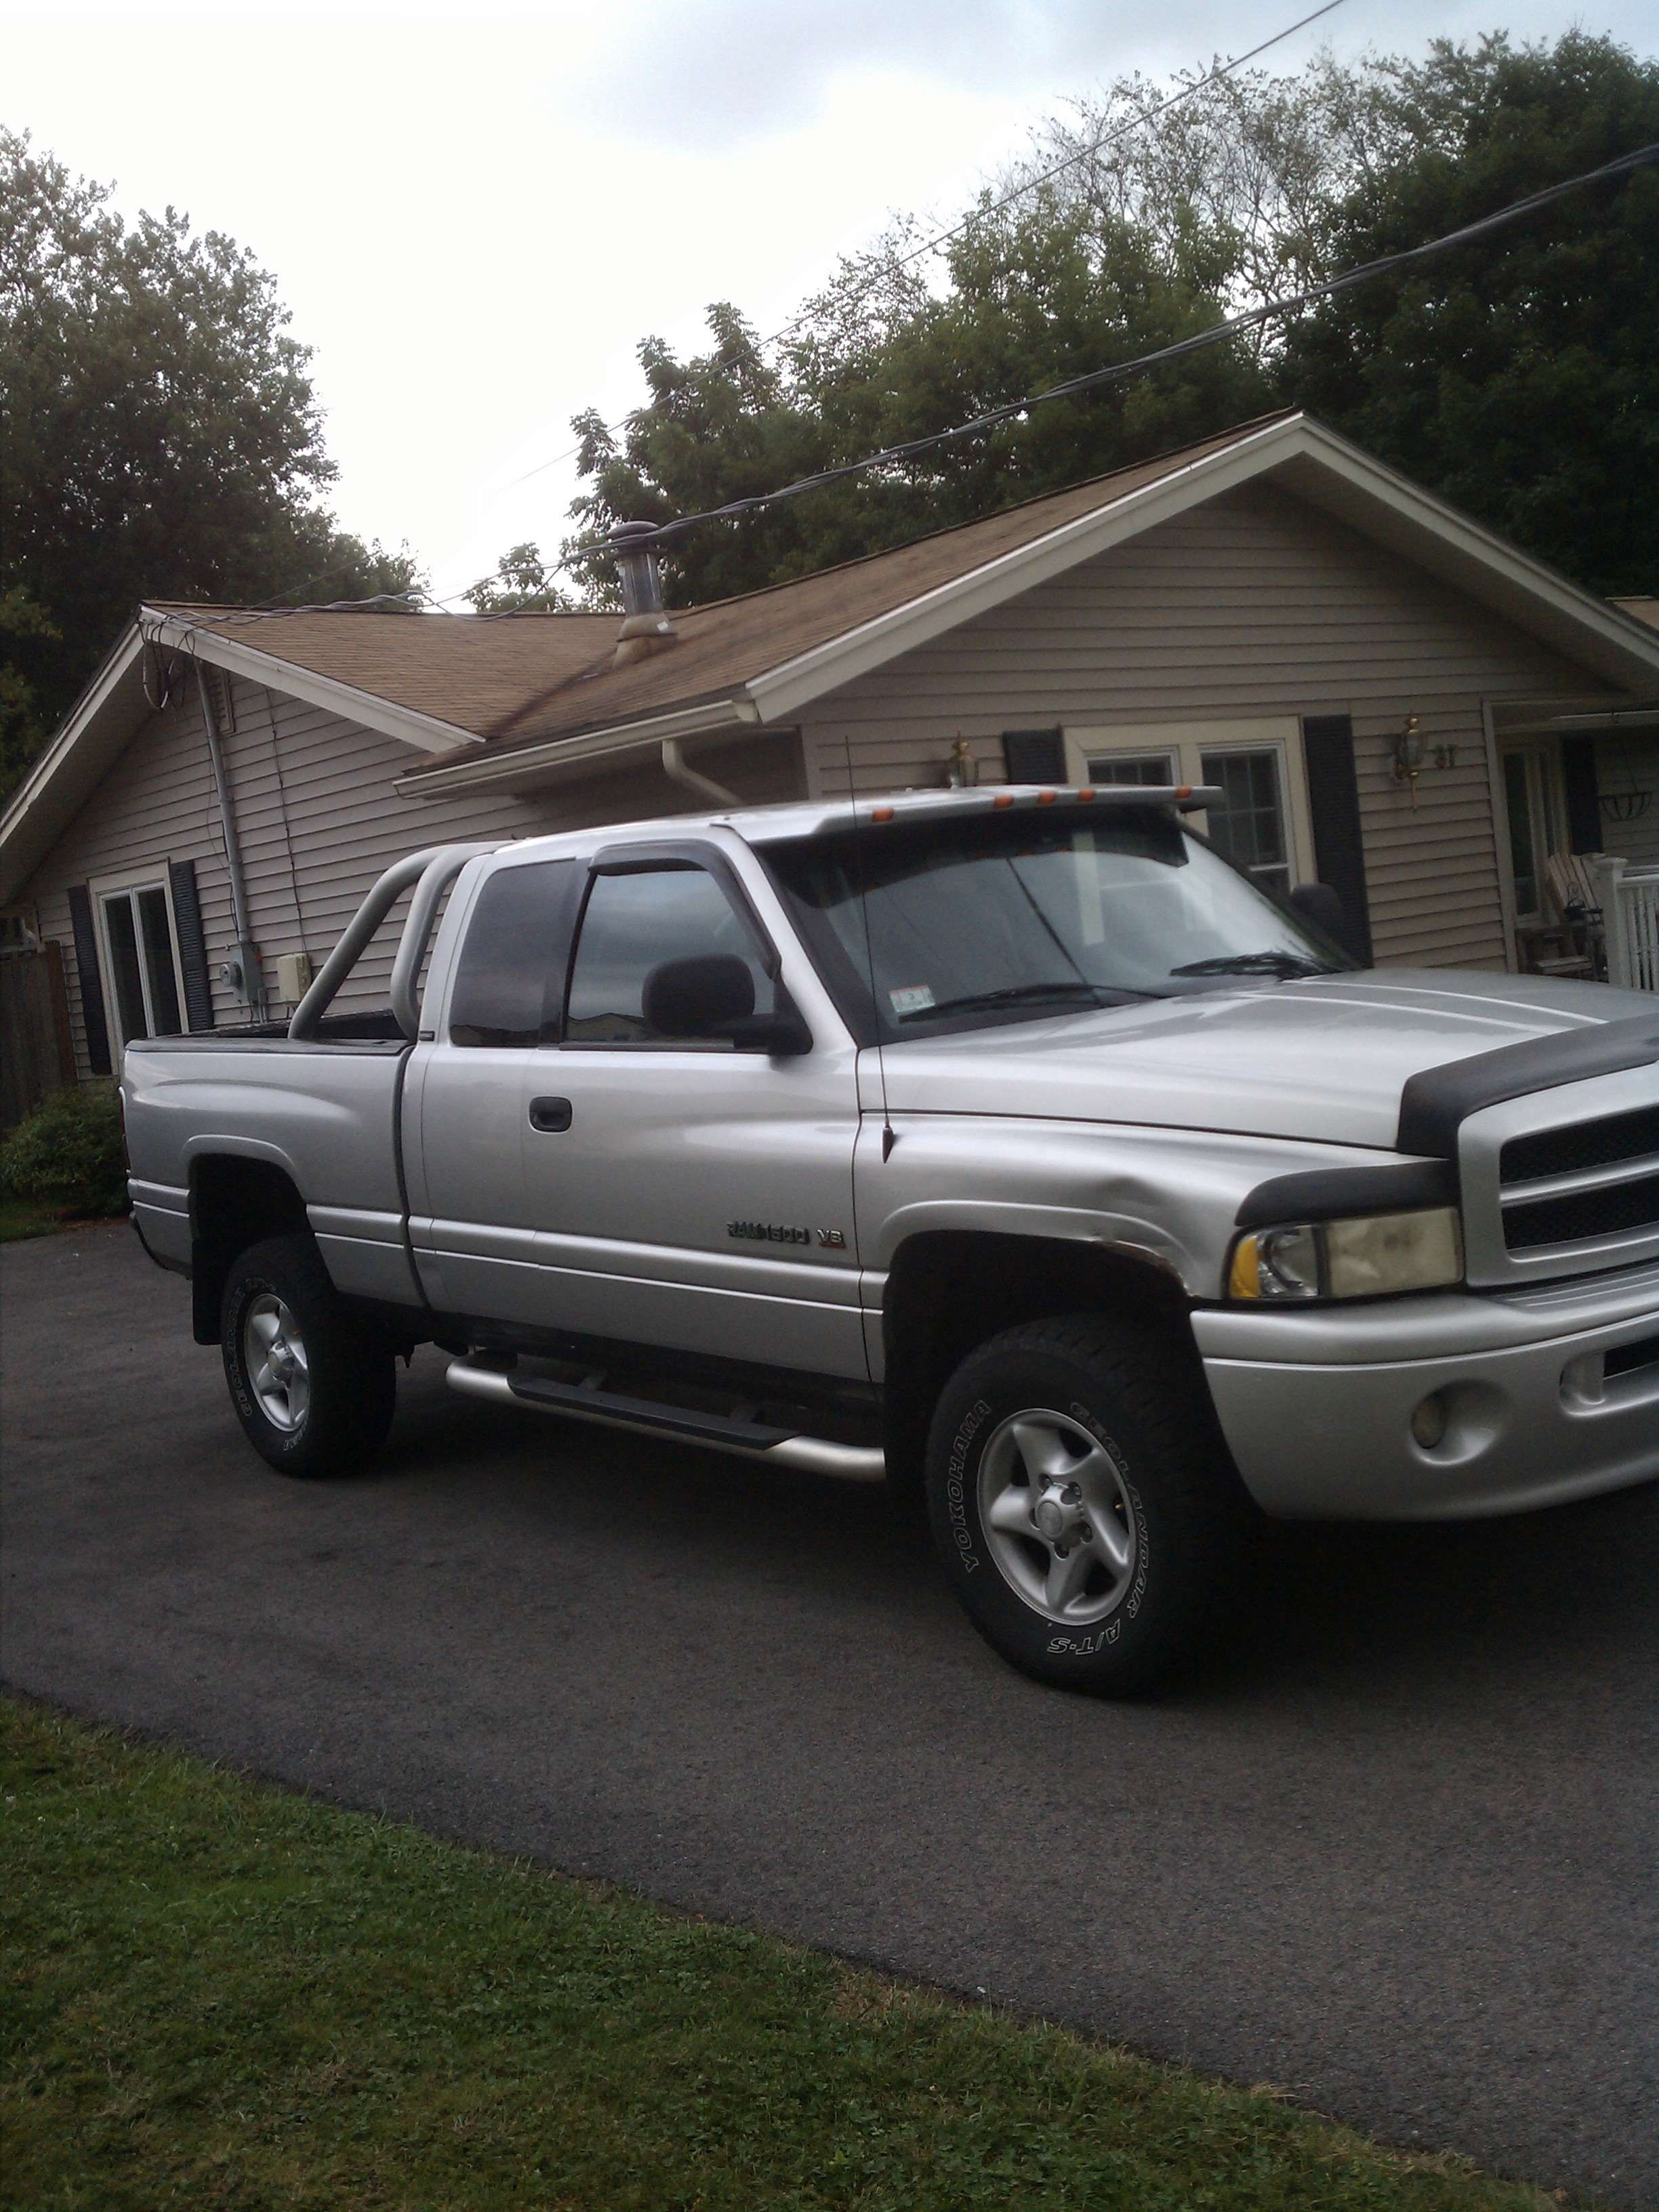 Make Dodge Model Ram 1500 Truck Year 2001 Body Style Extended Cab Pickup Exterior Color Silver Inter Dodge Models Interior Design Classes Extended Cab